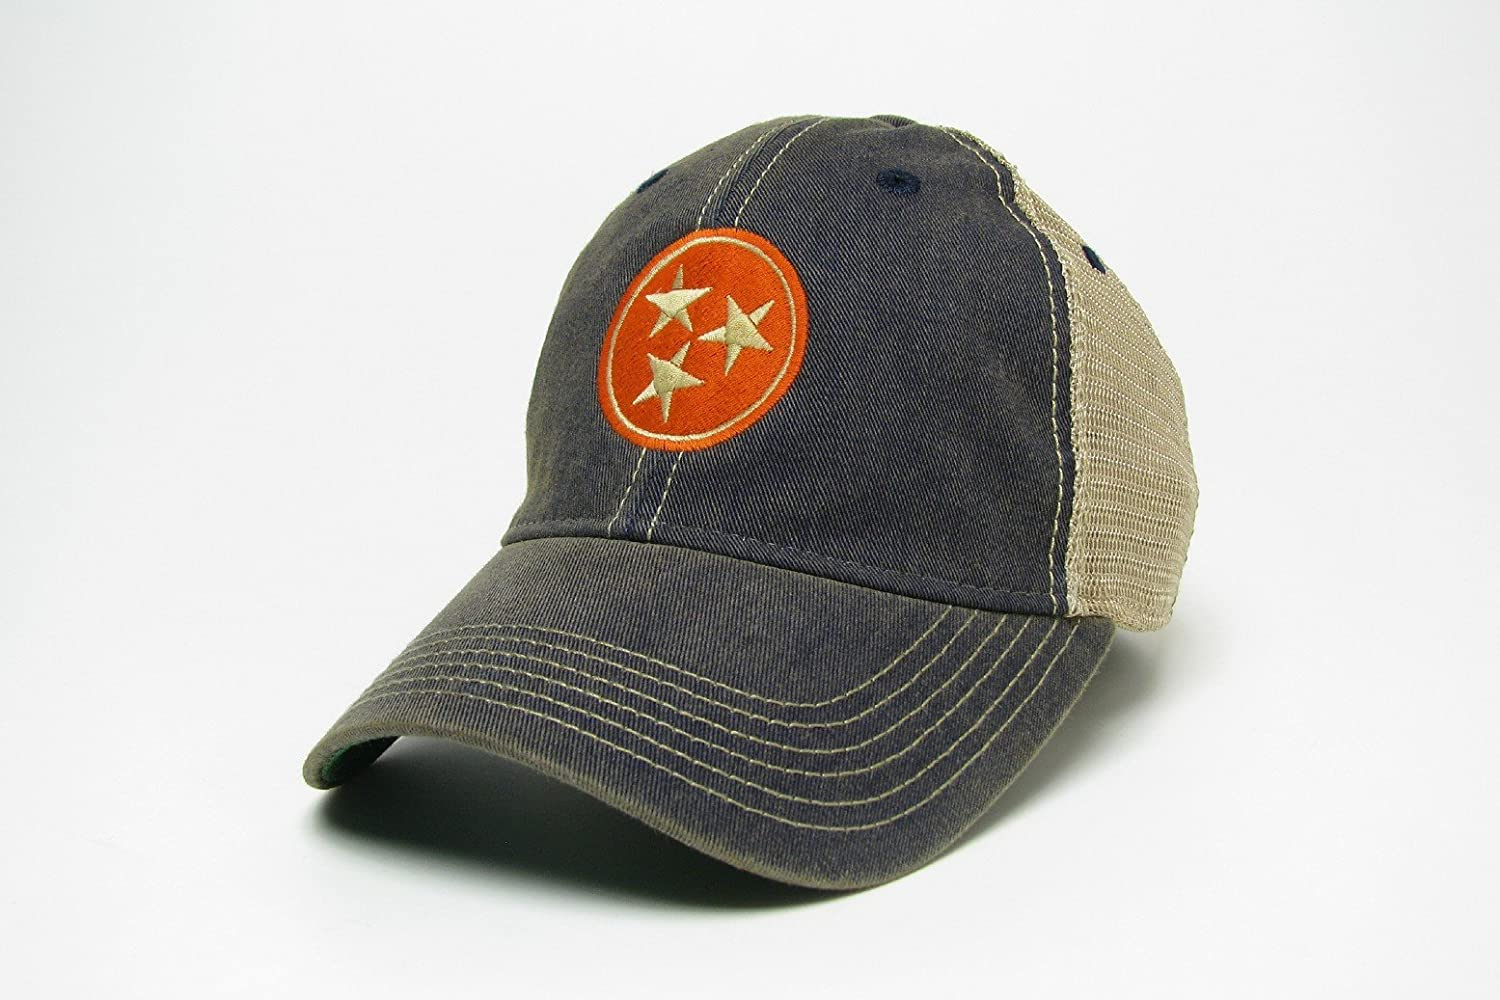 df216511dad Amazon.com   Tennessee Tri-star Trucker Style Hat Cap - 2 Colors - Gray and  Navy (Navy)   Sports   Outdoors